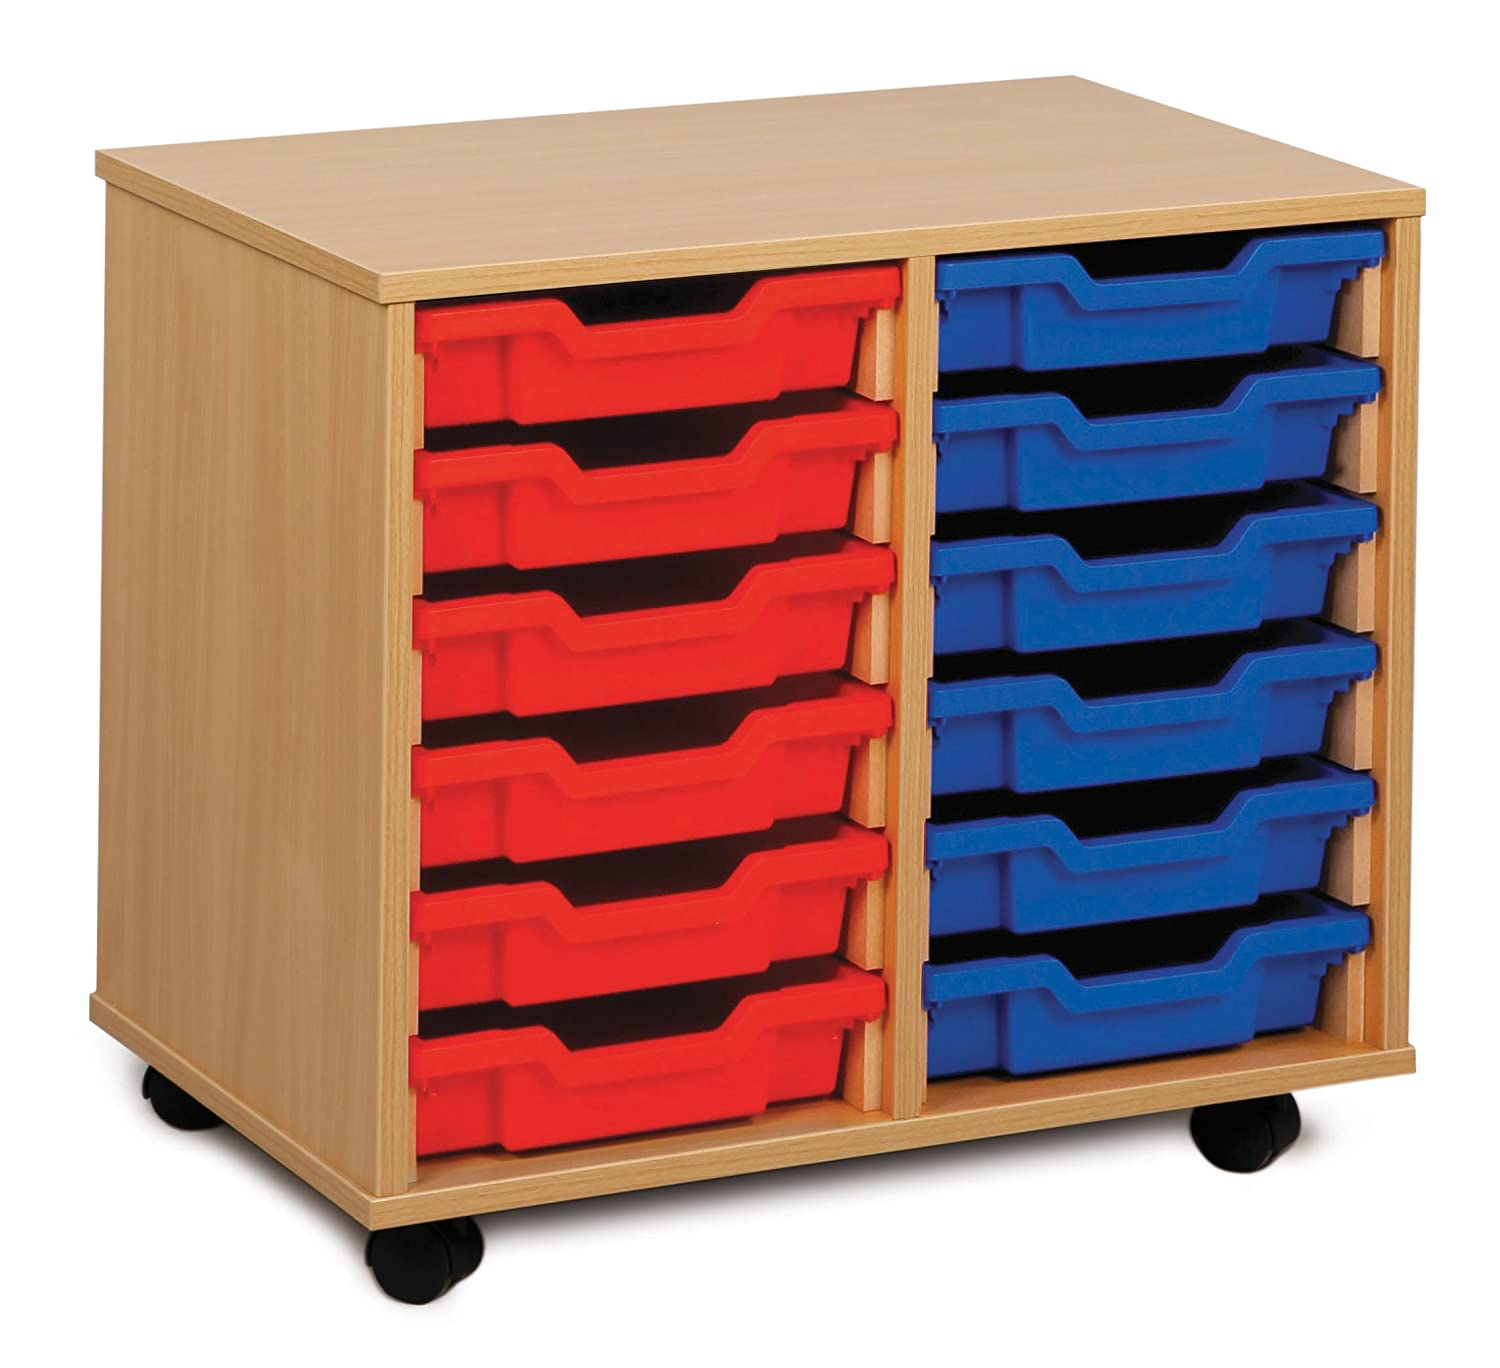 Monarch Mobile School Shallow Tray Storage Unit 12 Coloured Trays Beech MEQ2W-COL Office Needs Direct